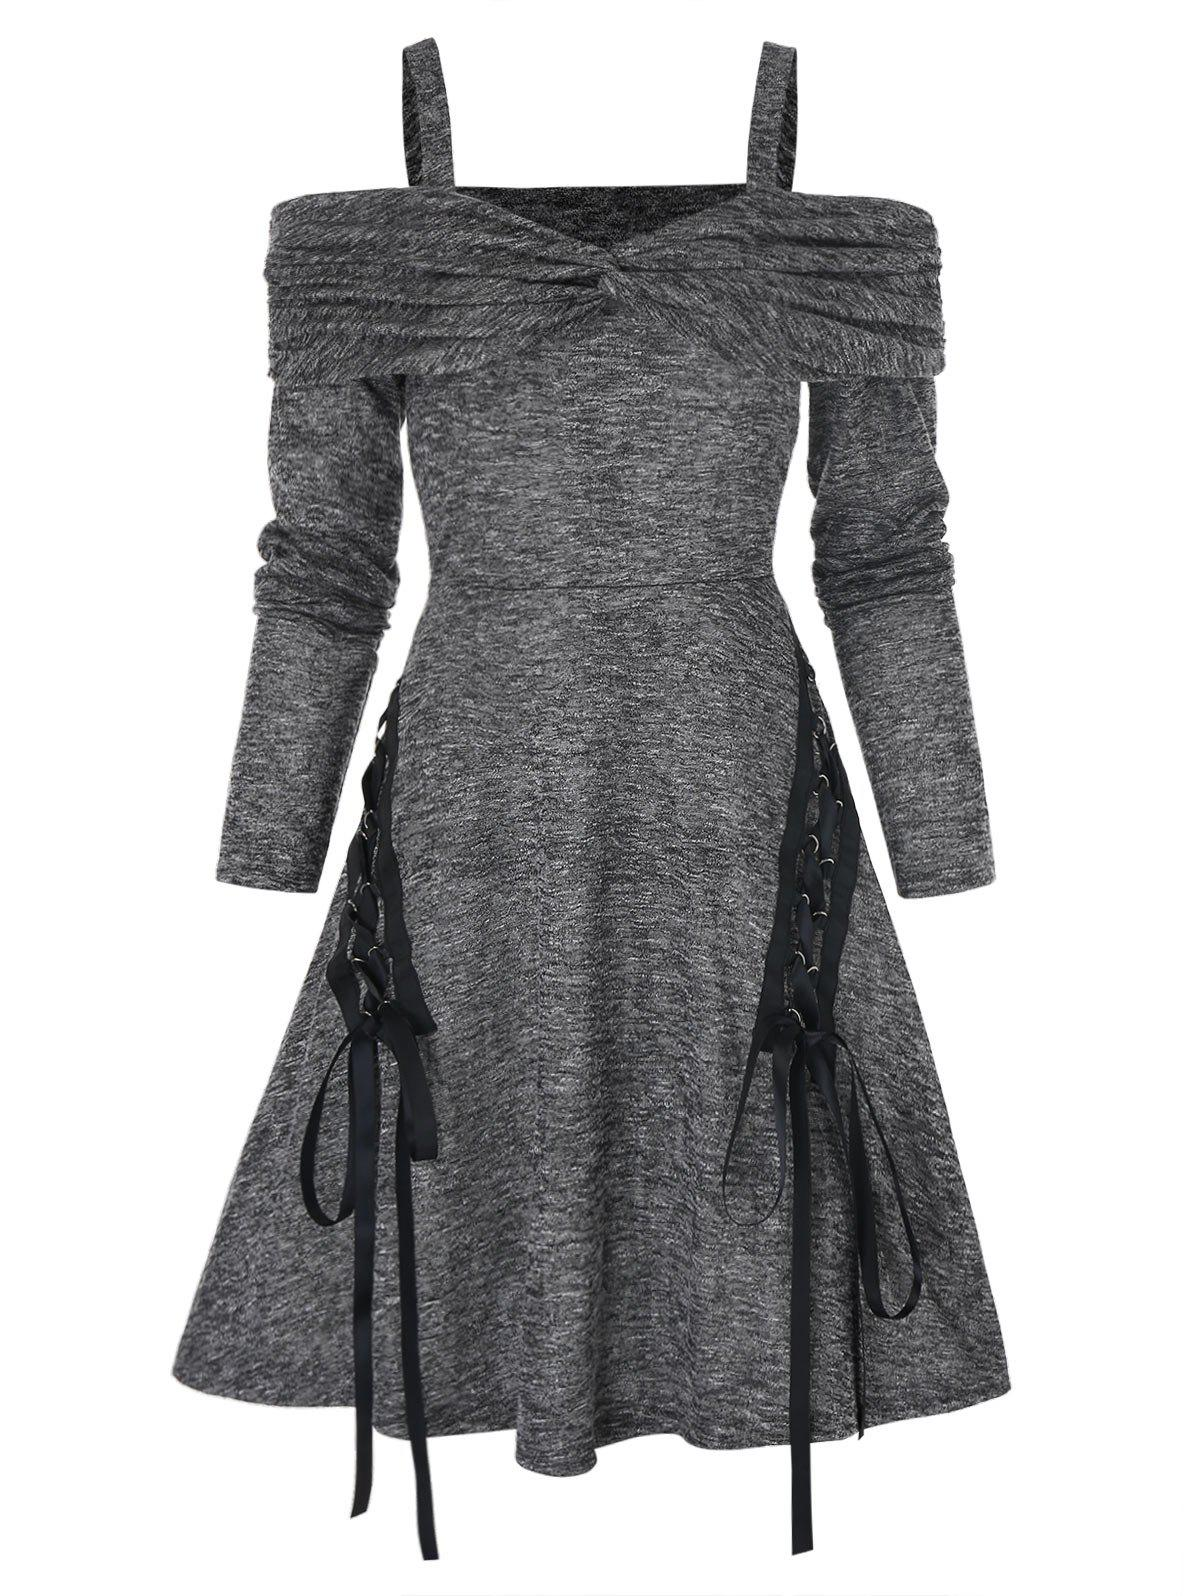 Twist Front Cold Shoulder Heathered Lace-up Dress - multicolor A 2XL